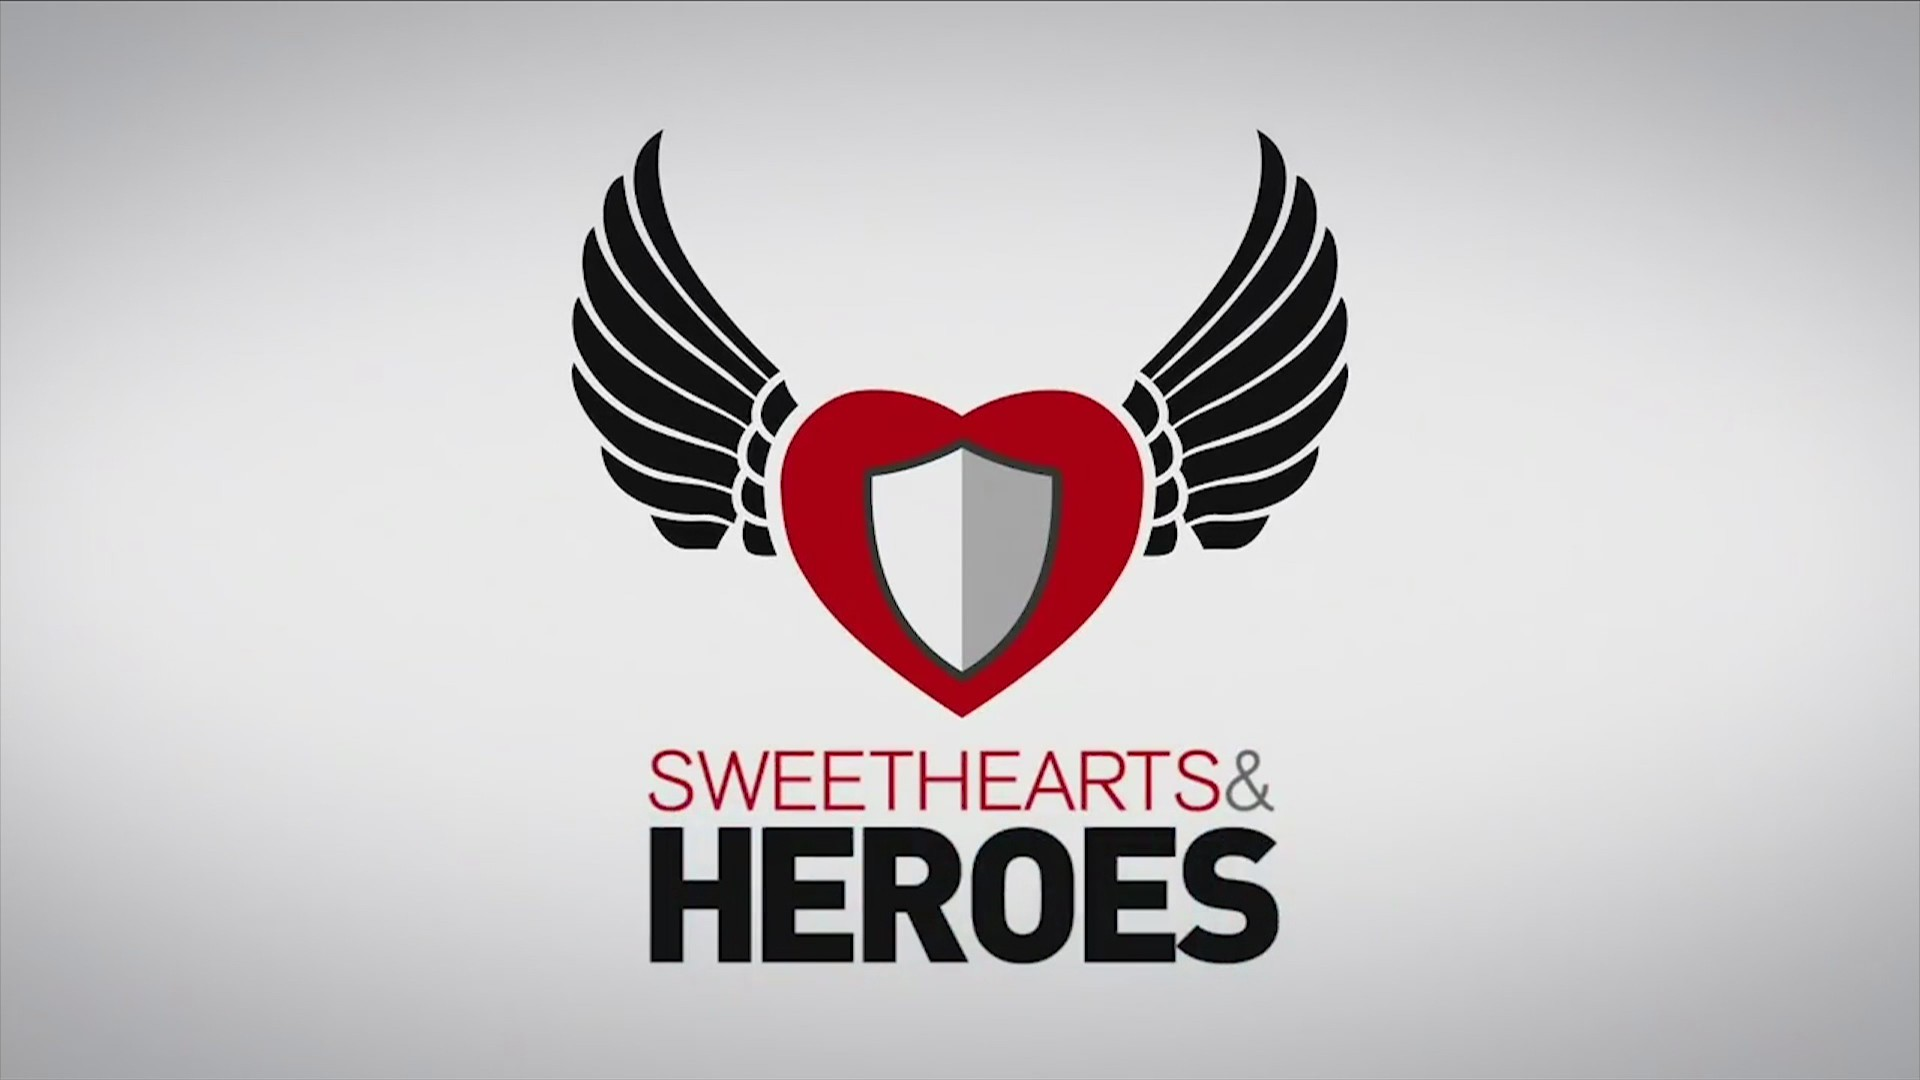 Sweethearts and Heroes